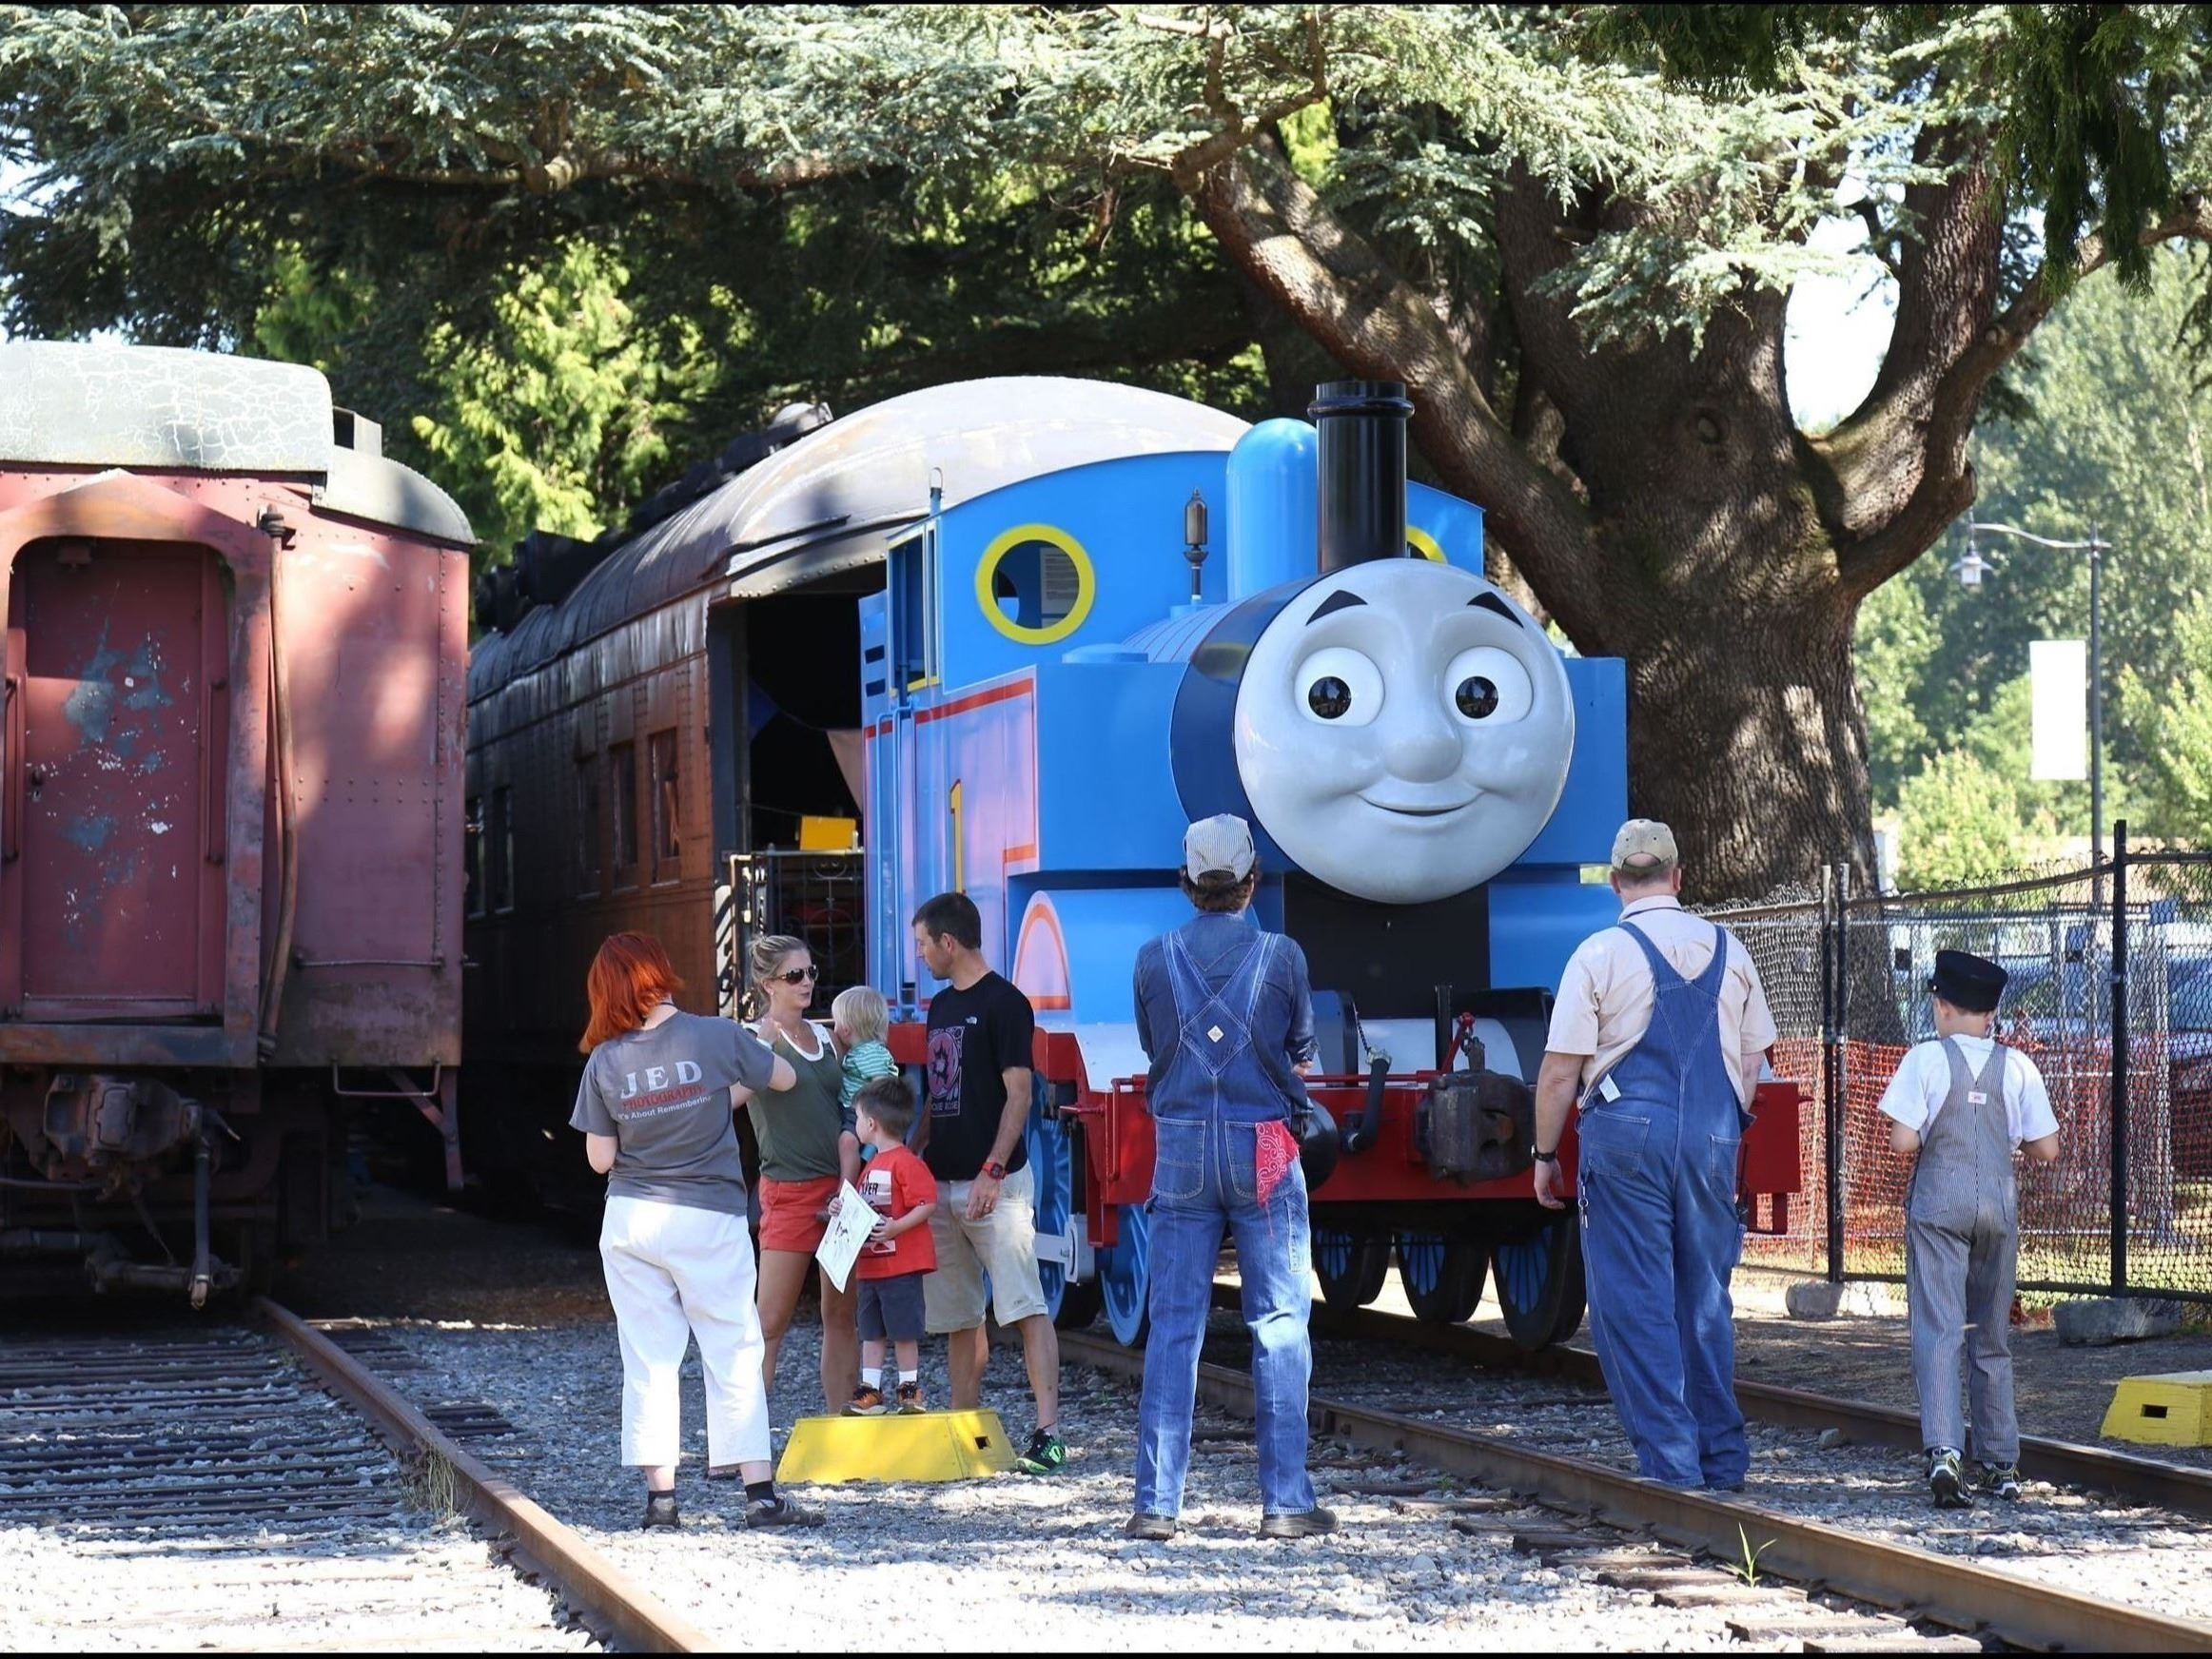 This is a picture of Thomas the Tank Engine from the Children's Television Cartoon.